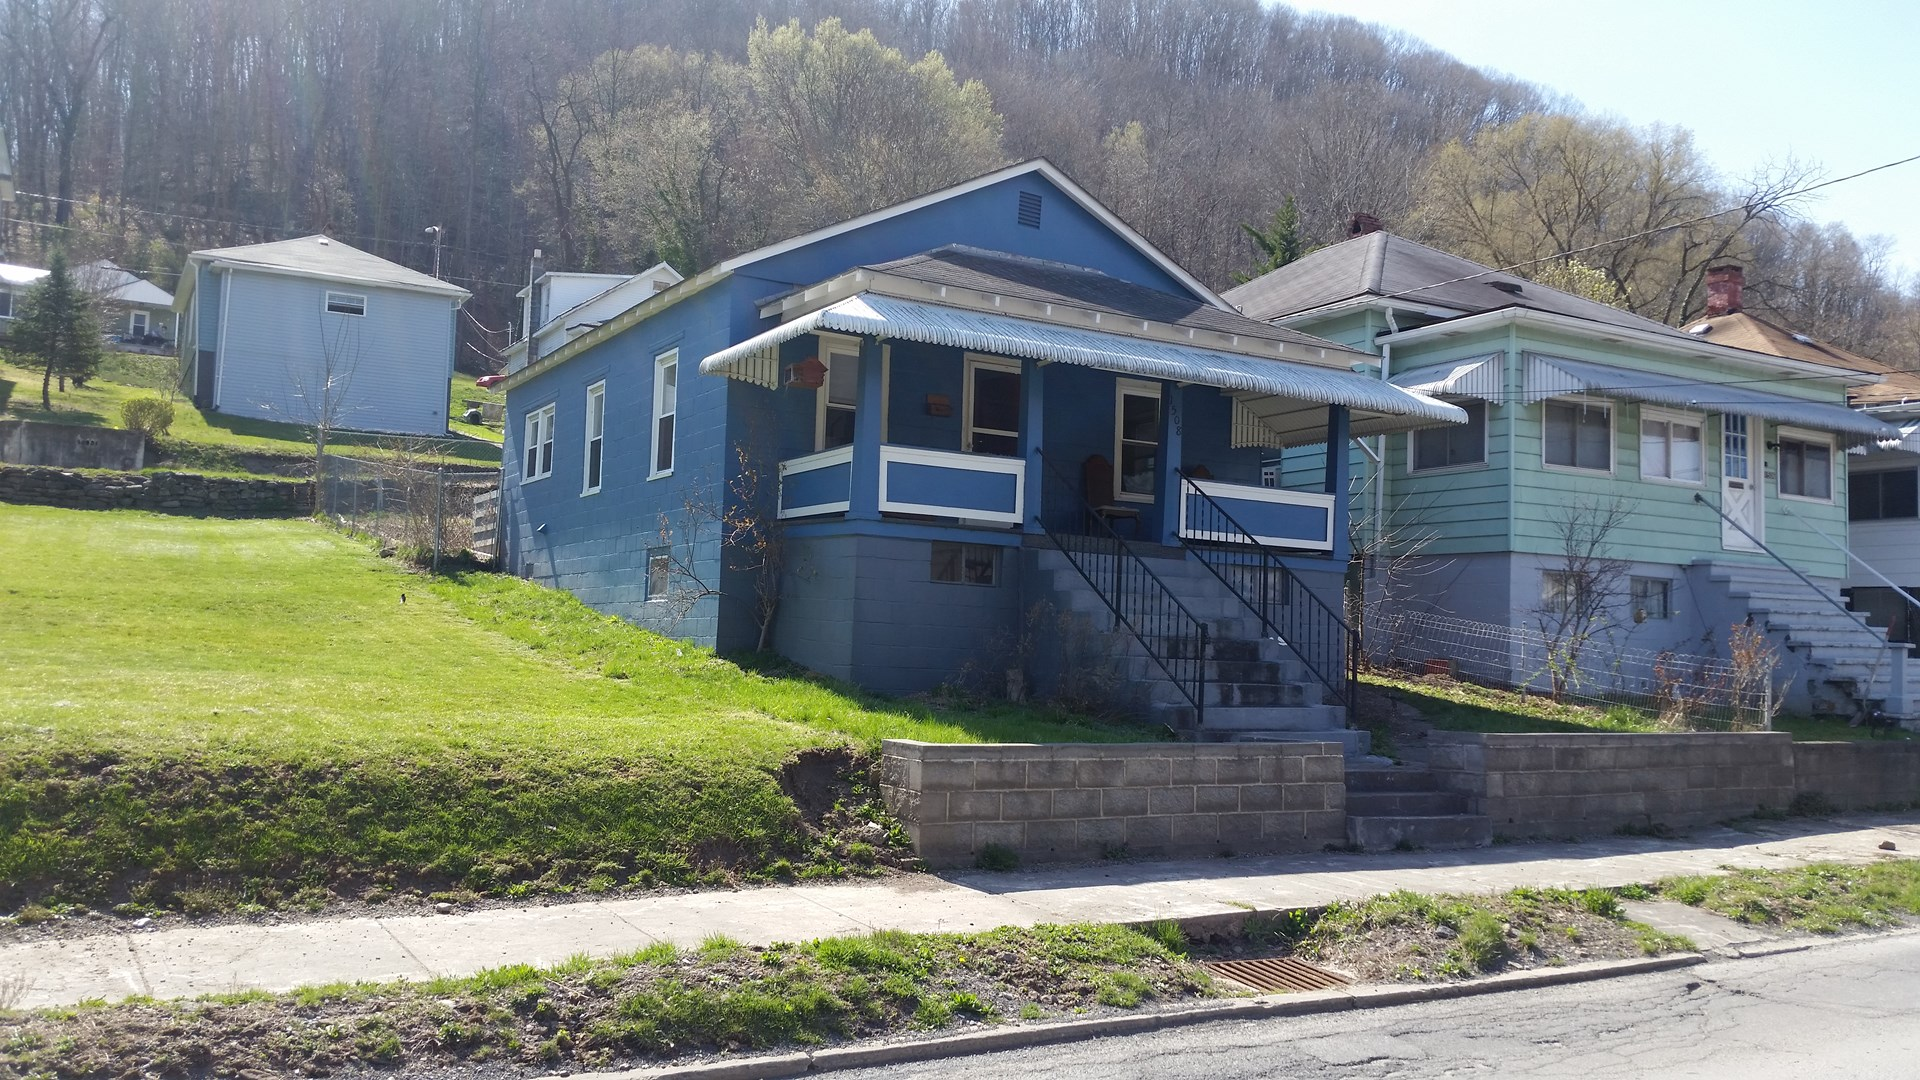 COZY HOME IN HISTORIC RIVER AND RAILROAD TOWN, HINTON,WV